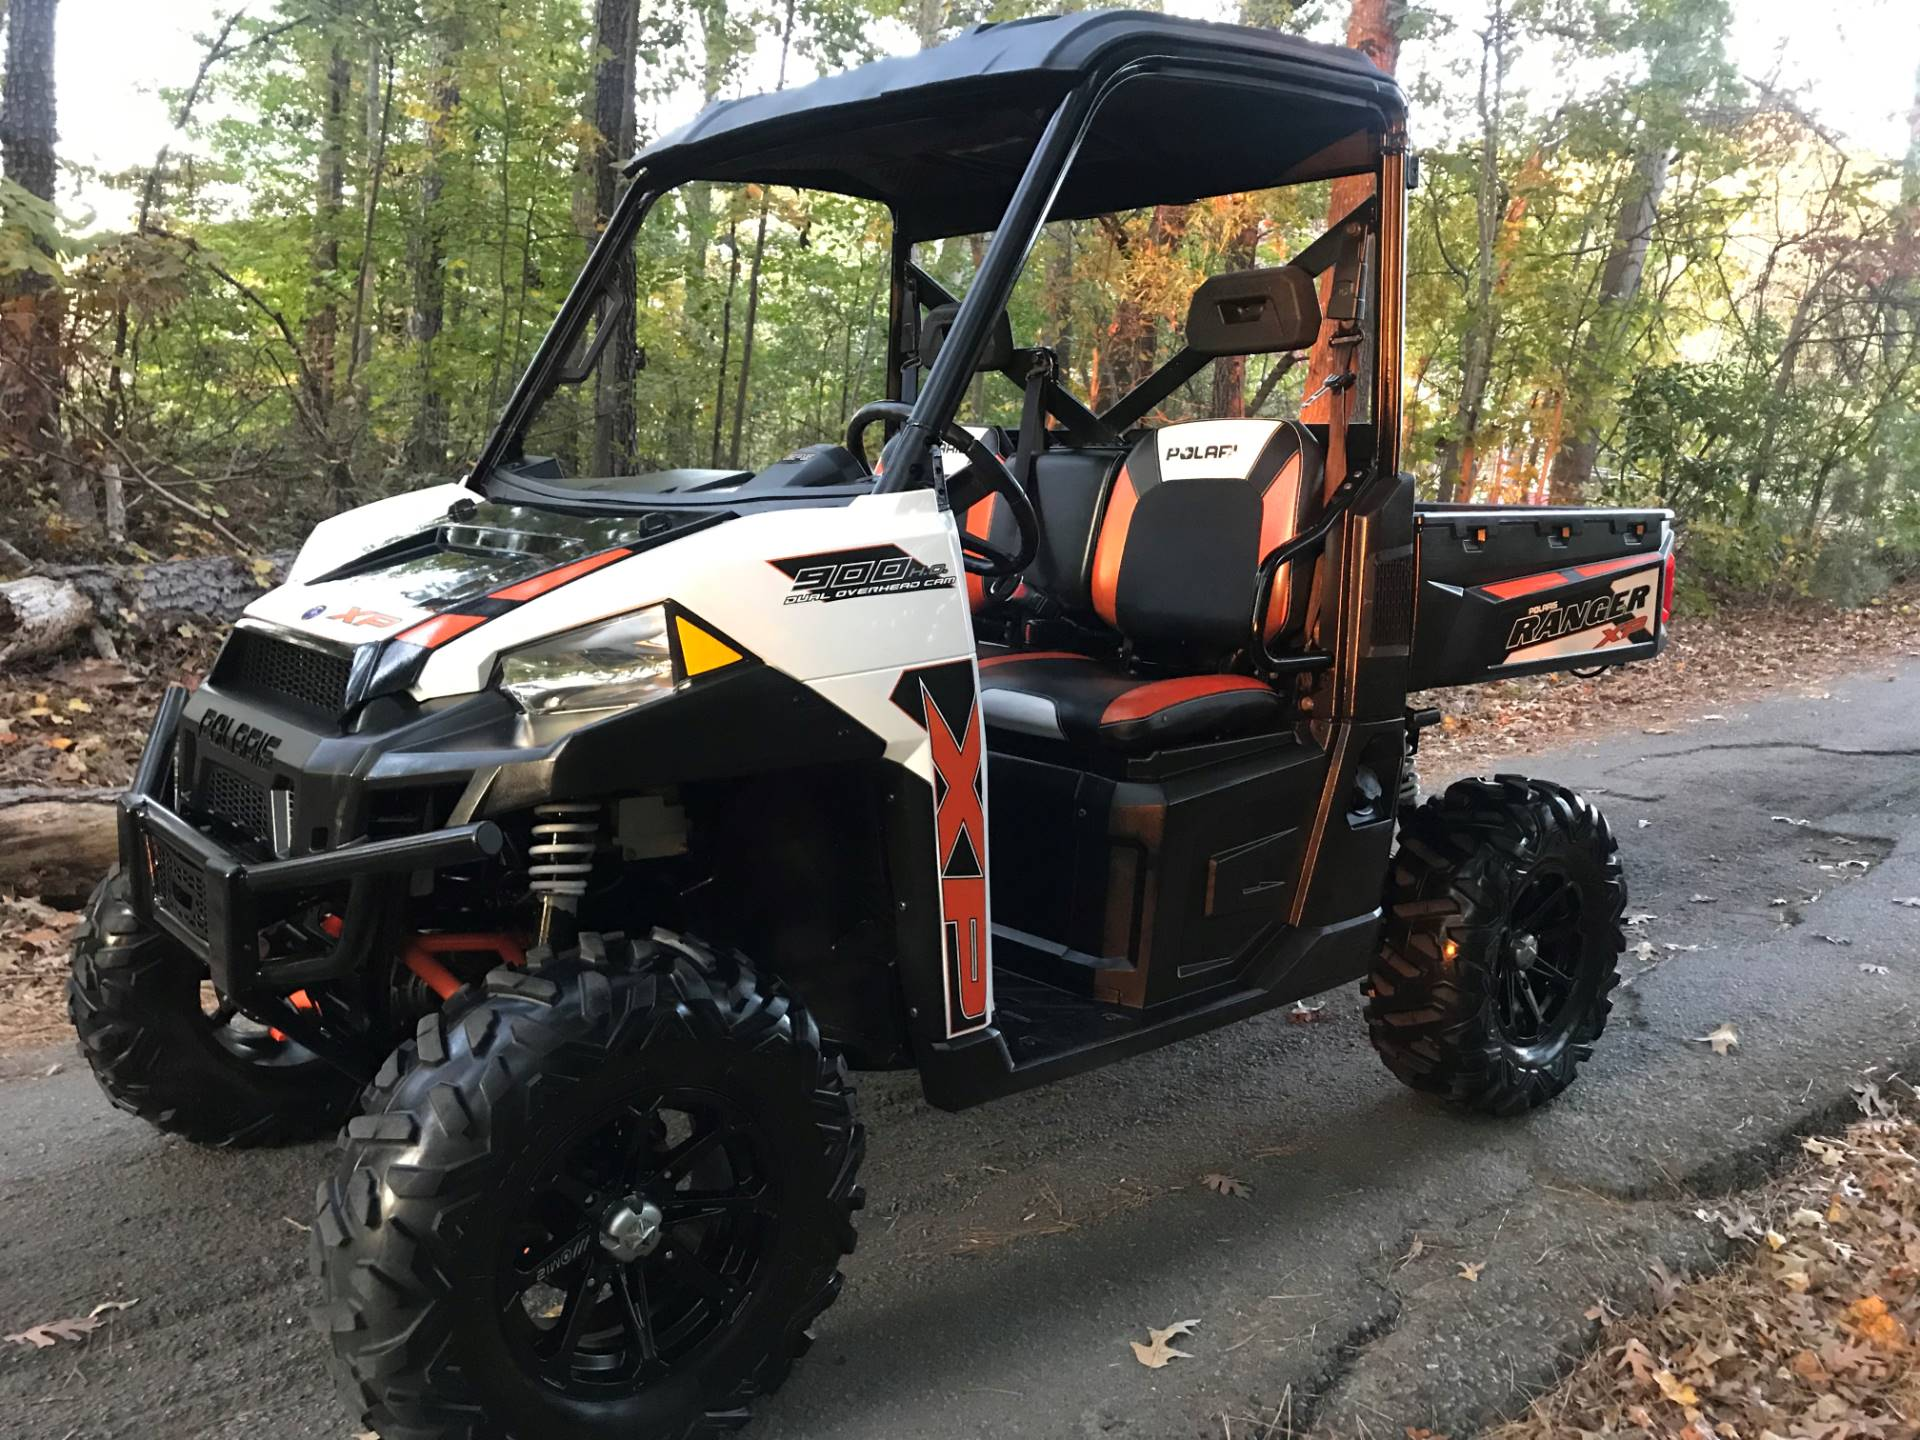 2015 POLARIS RANGER 900 XP EPS in Woodstock, Georgia - Photo 6